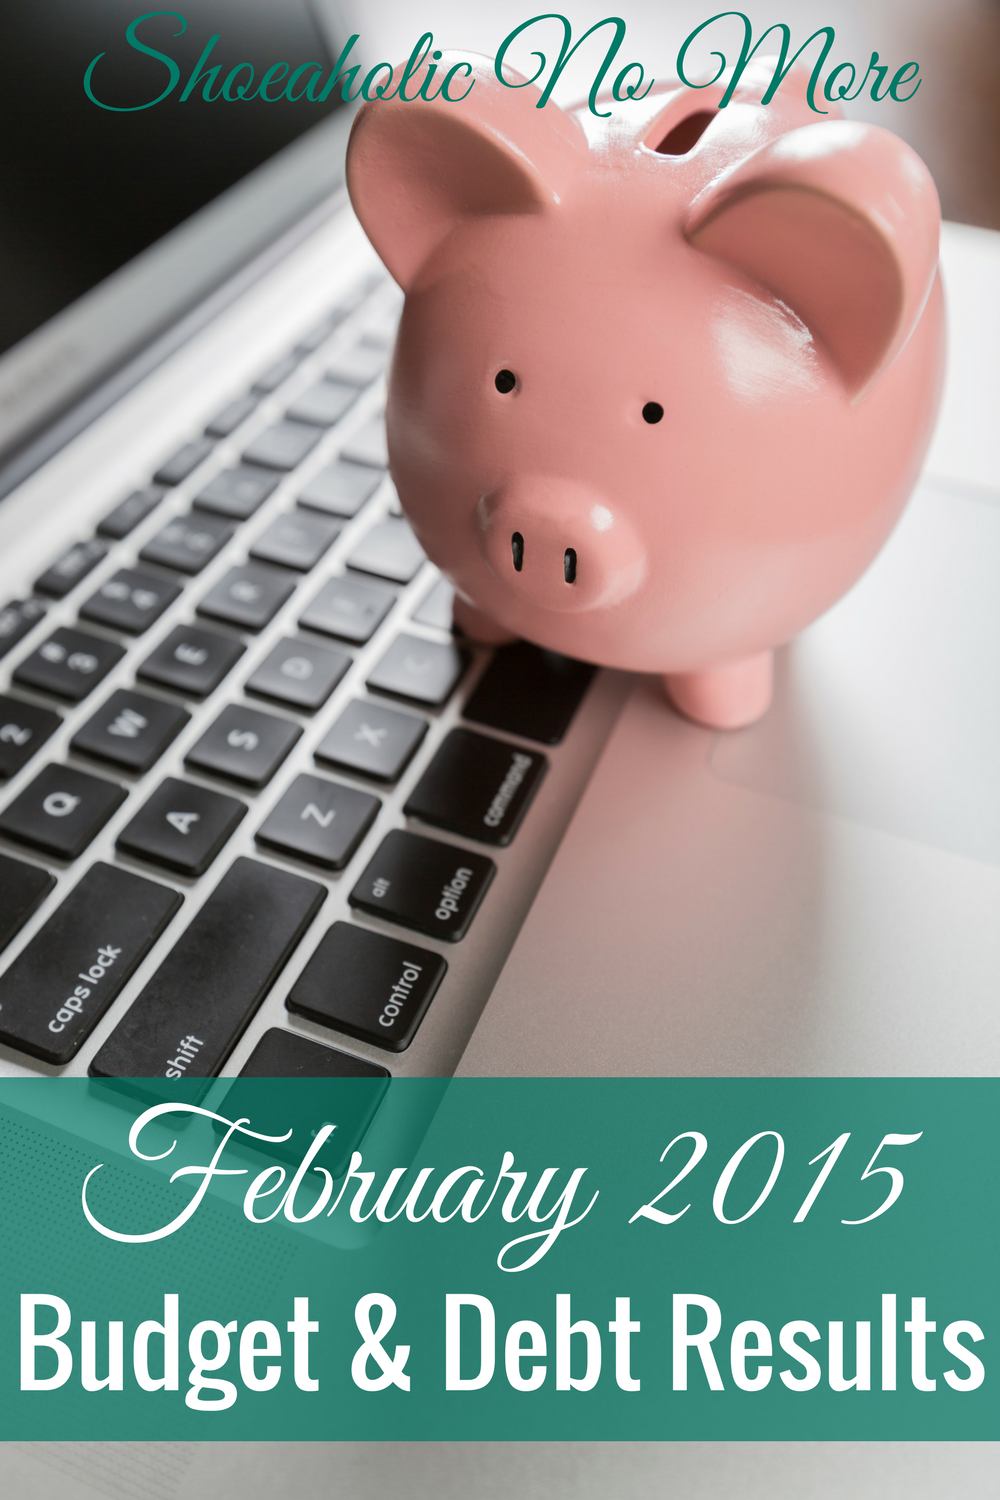 This blogger shared her budget and debt results for the month of February, and she shares the good and the bad!